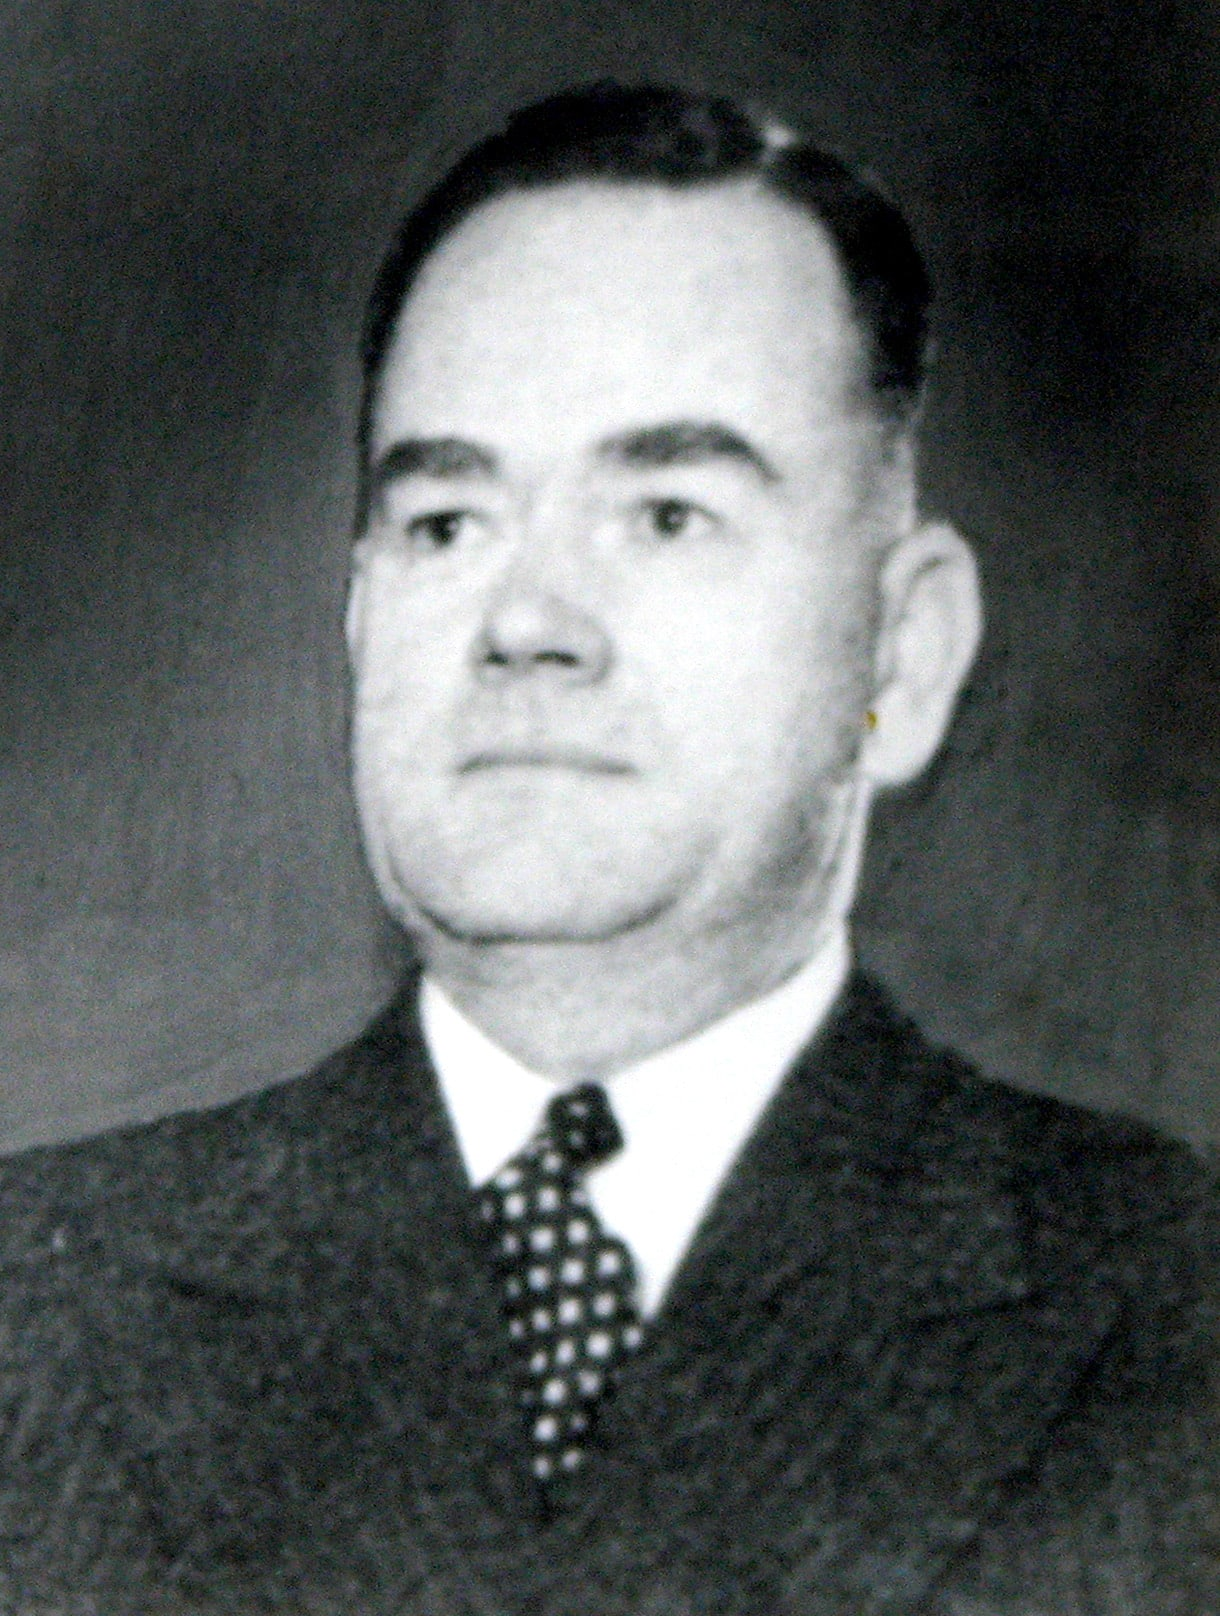 Mayor Fred D. Lamont